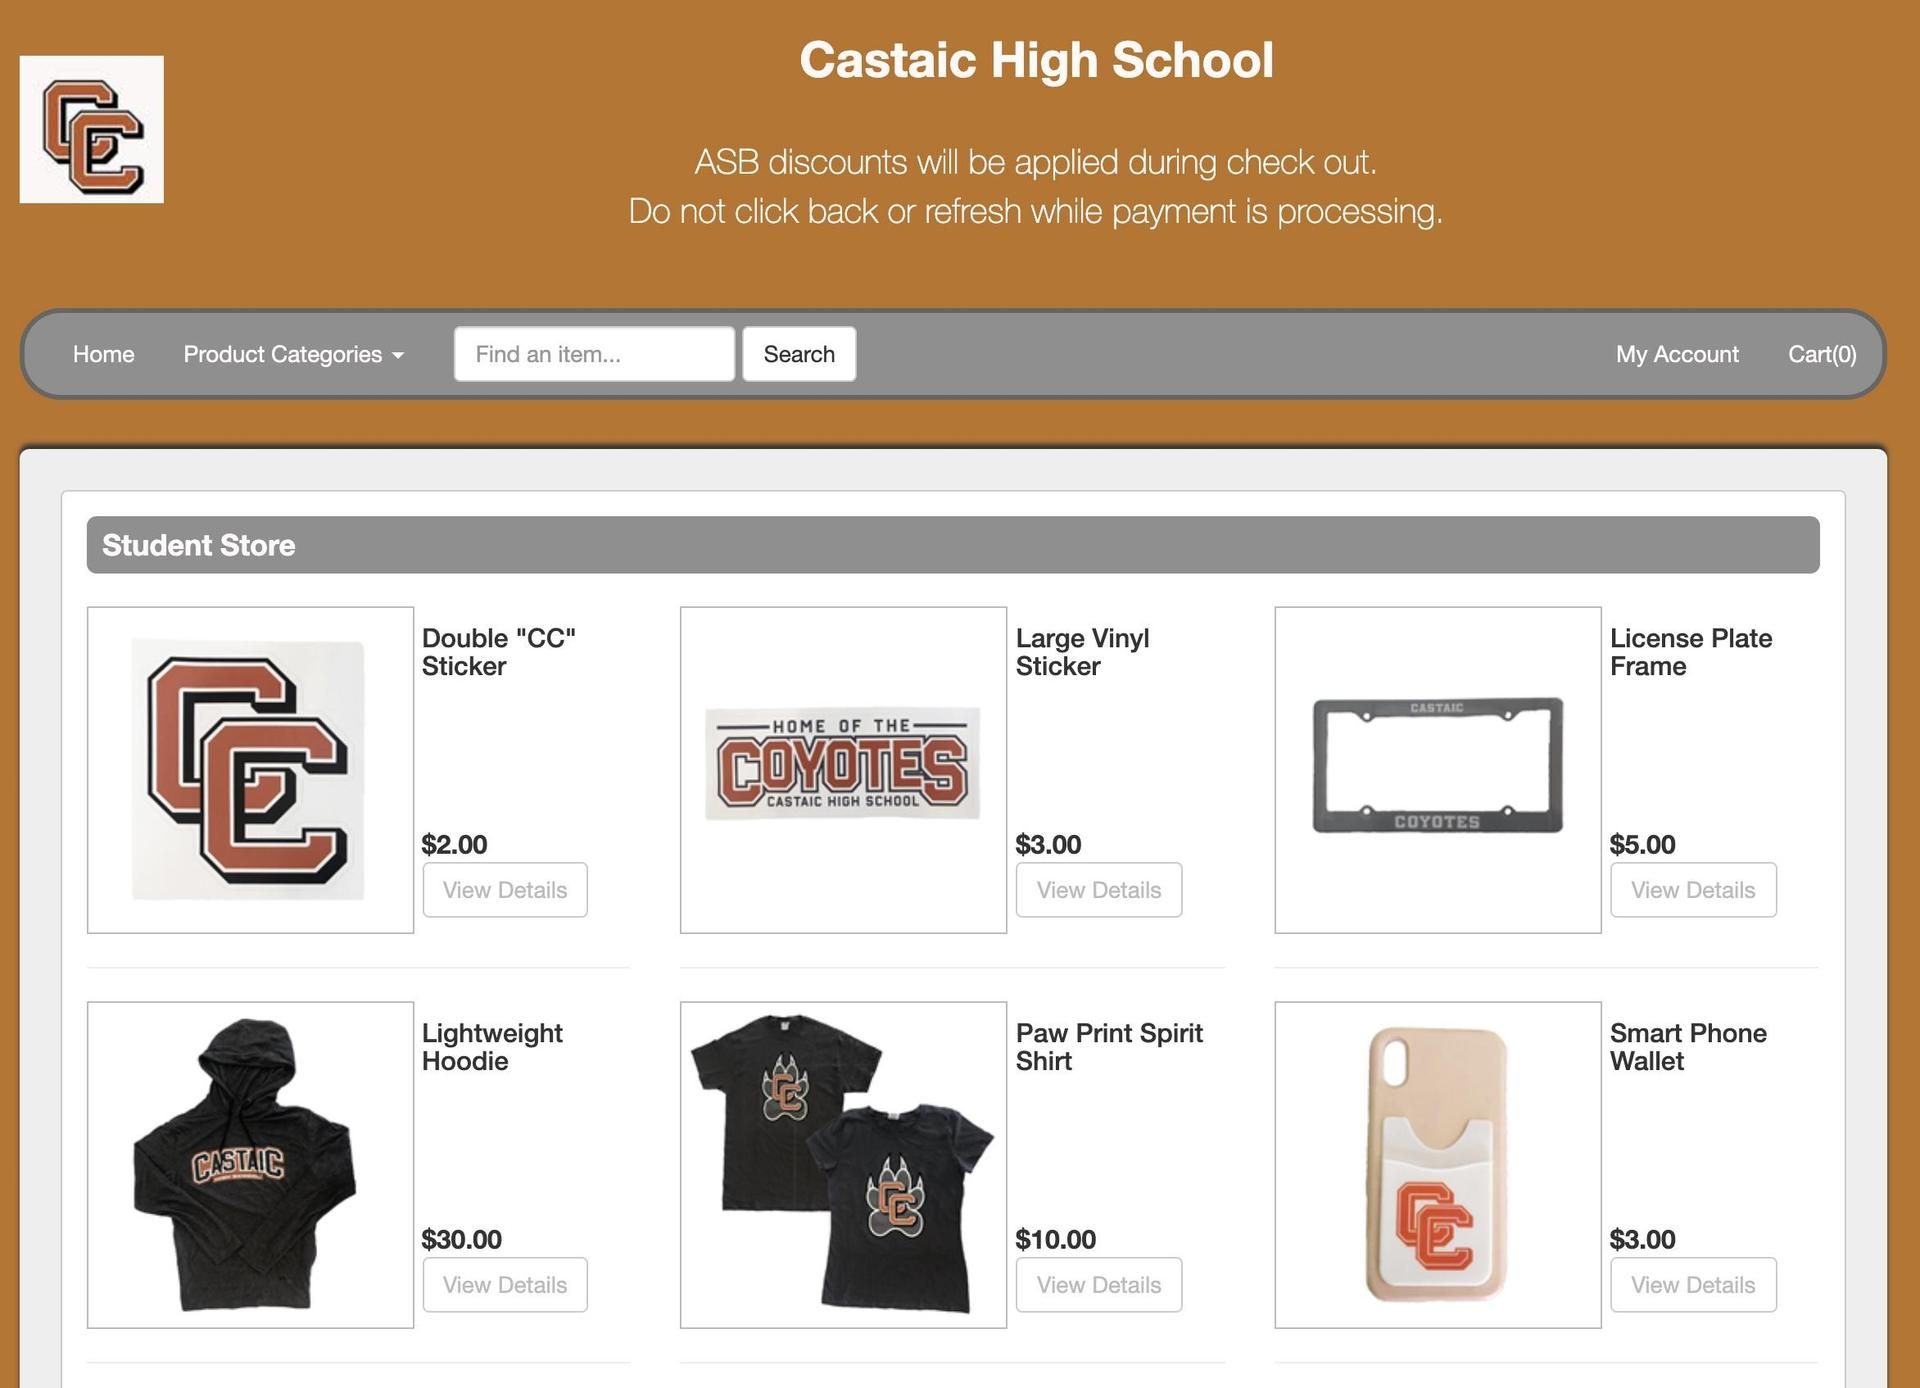 https://castaichighschool.myschoolcentral.com